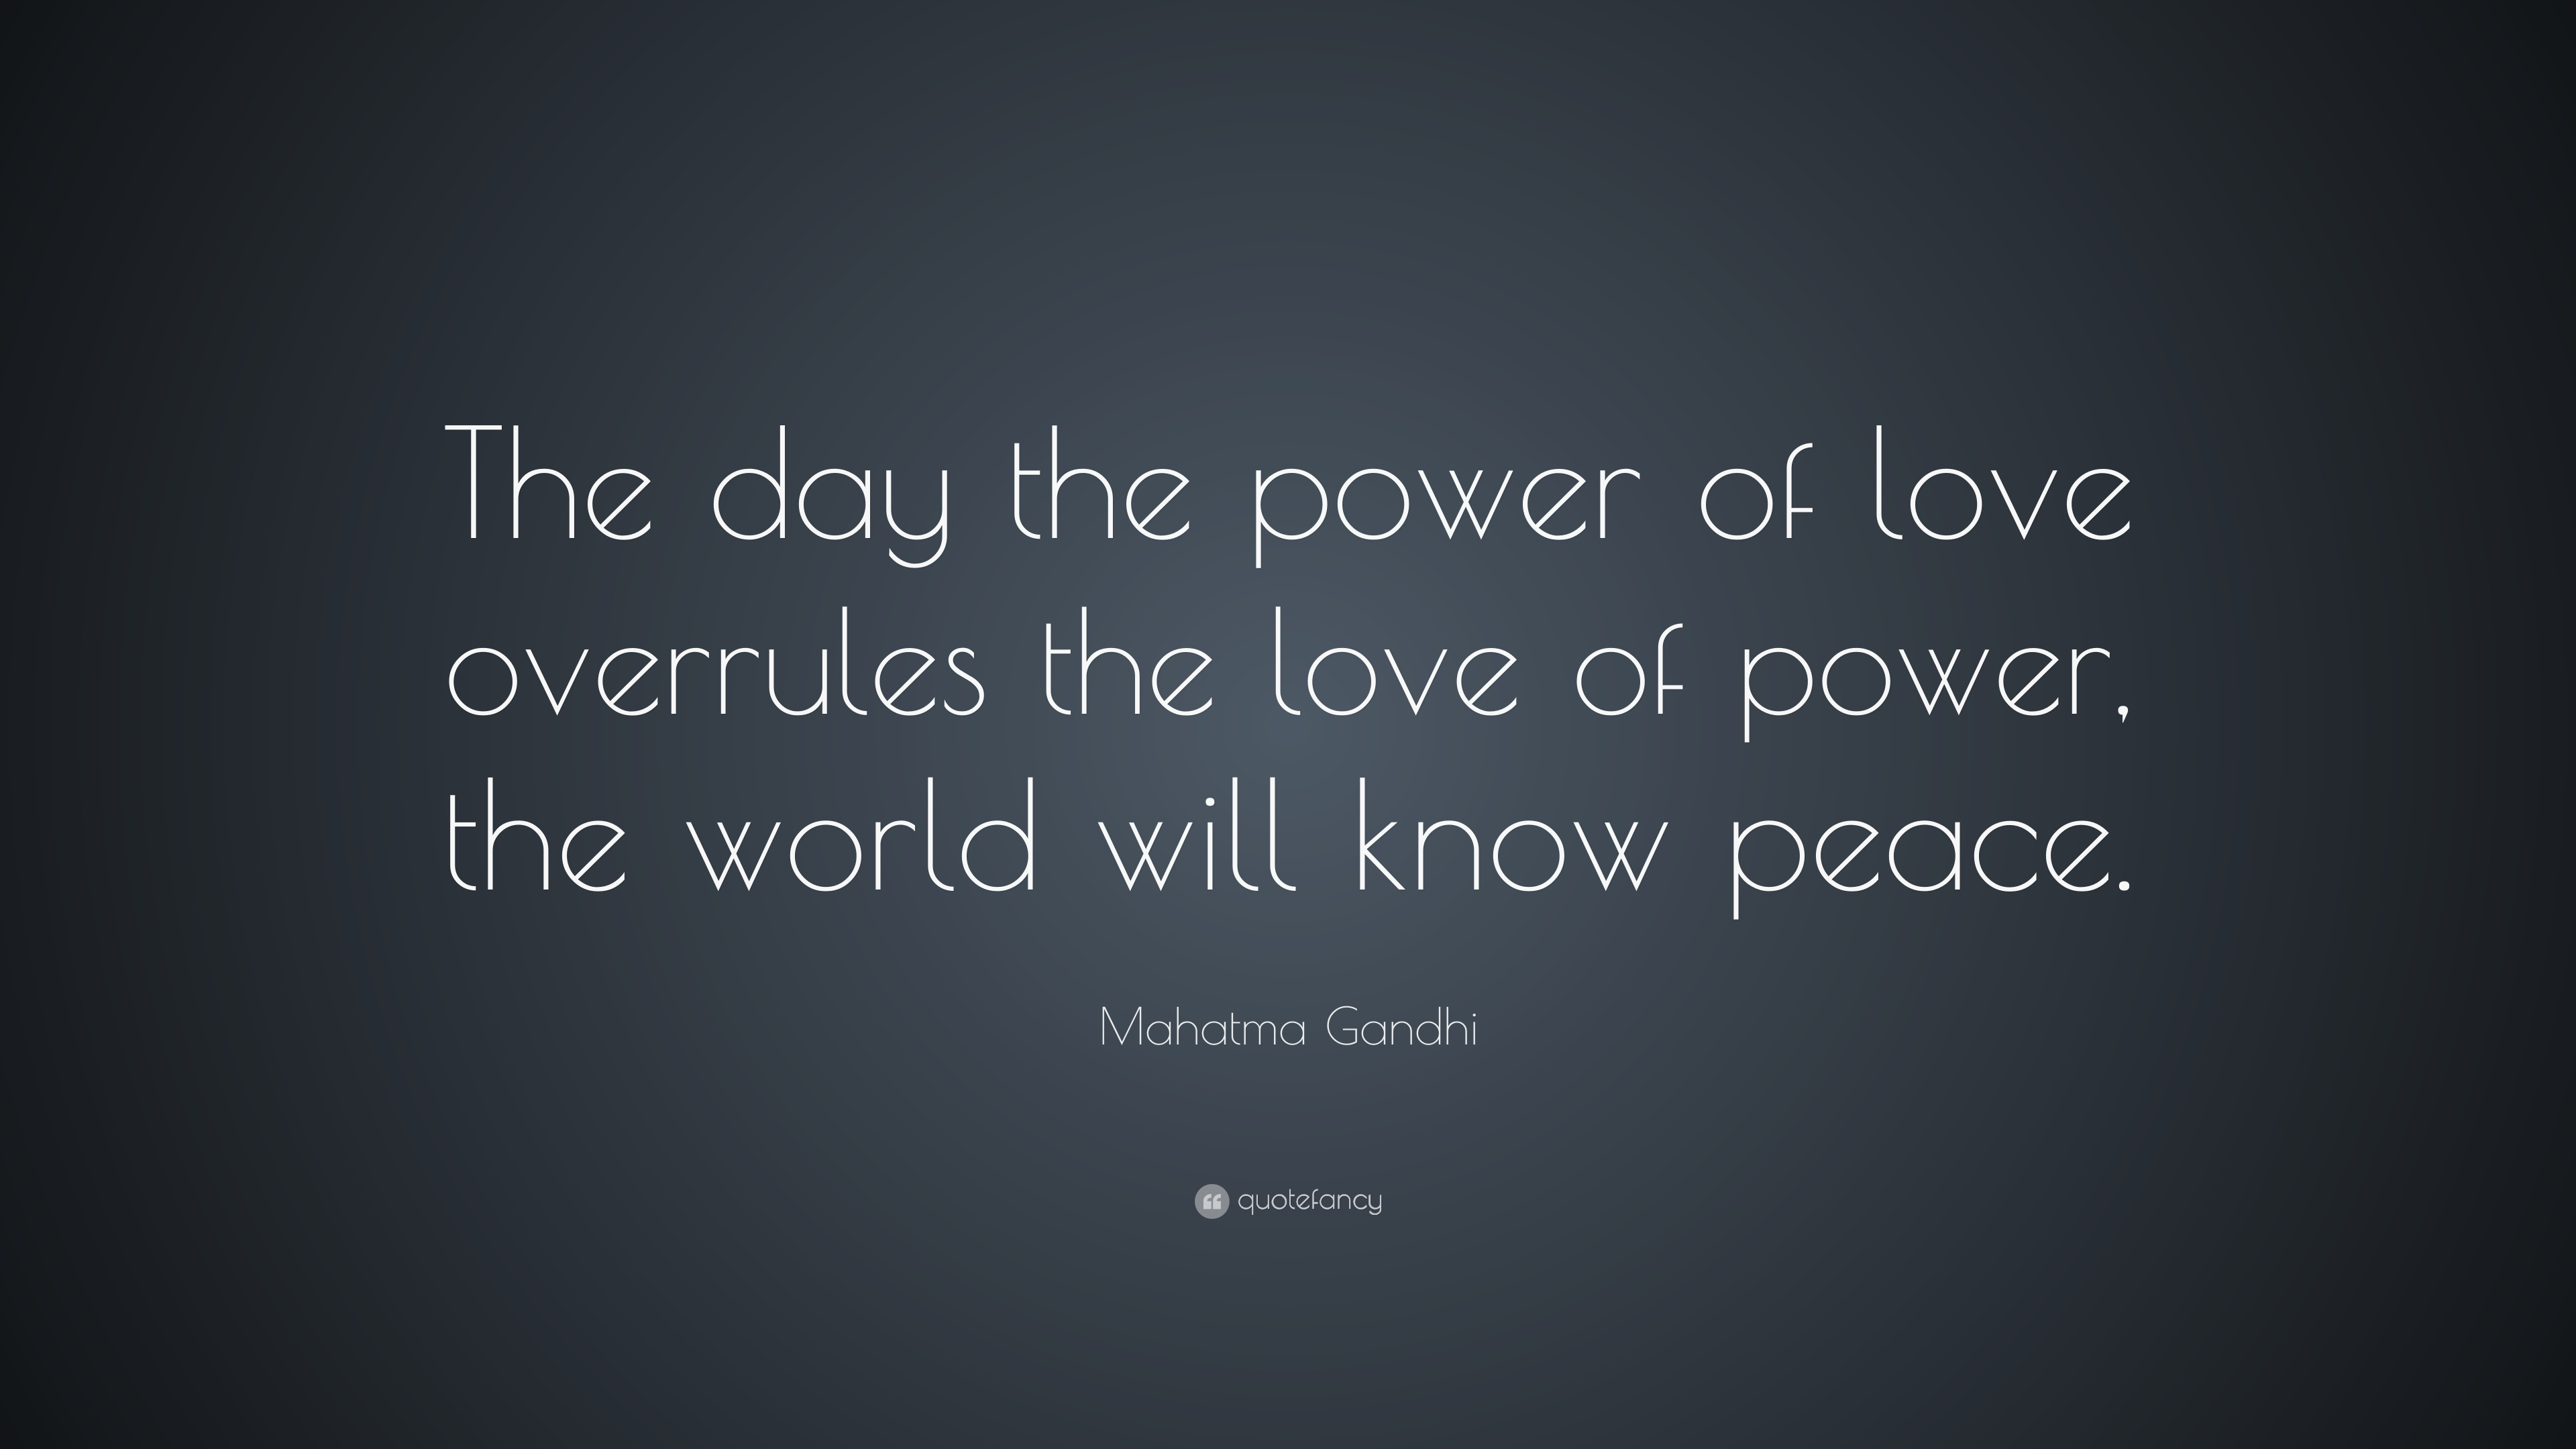 Napoleon Hill Quotes Wallpaper Mahatma Gandhi Quote The Day The Power Of Love Overrules